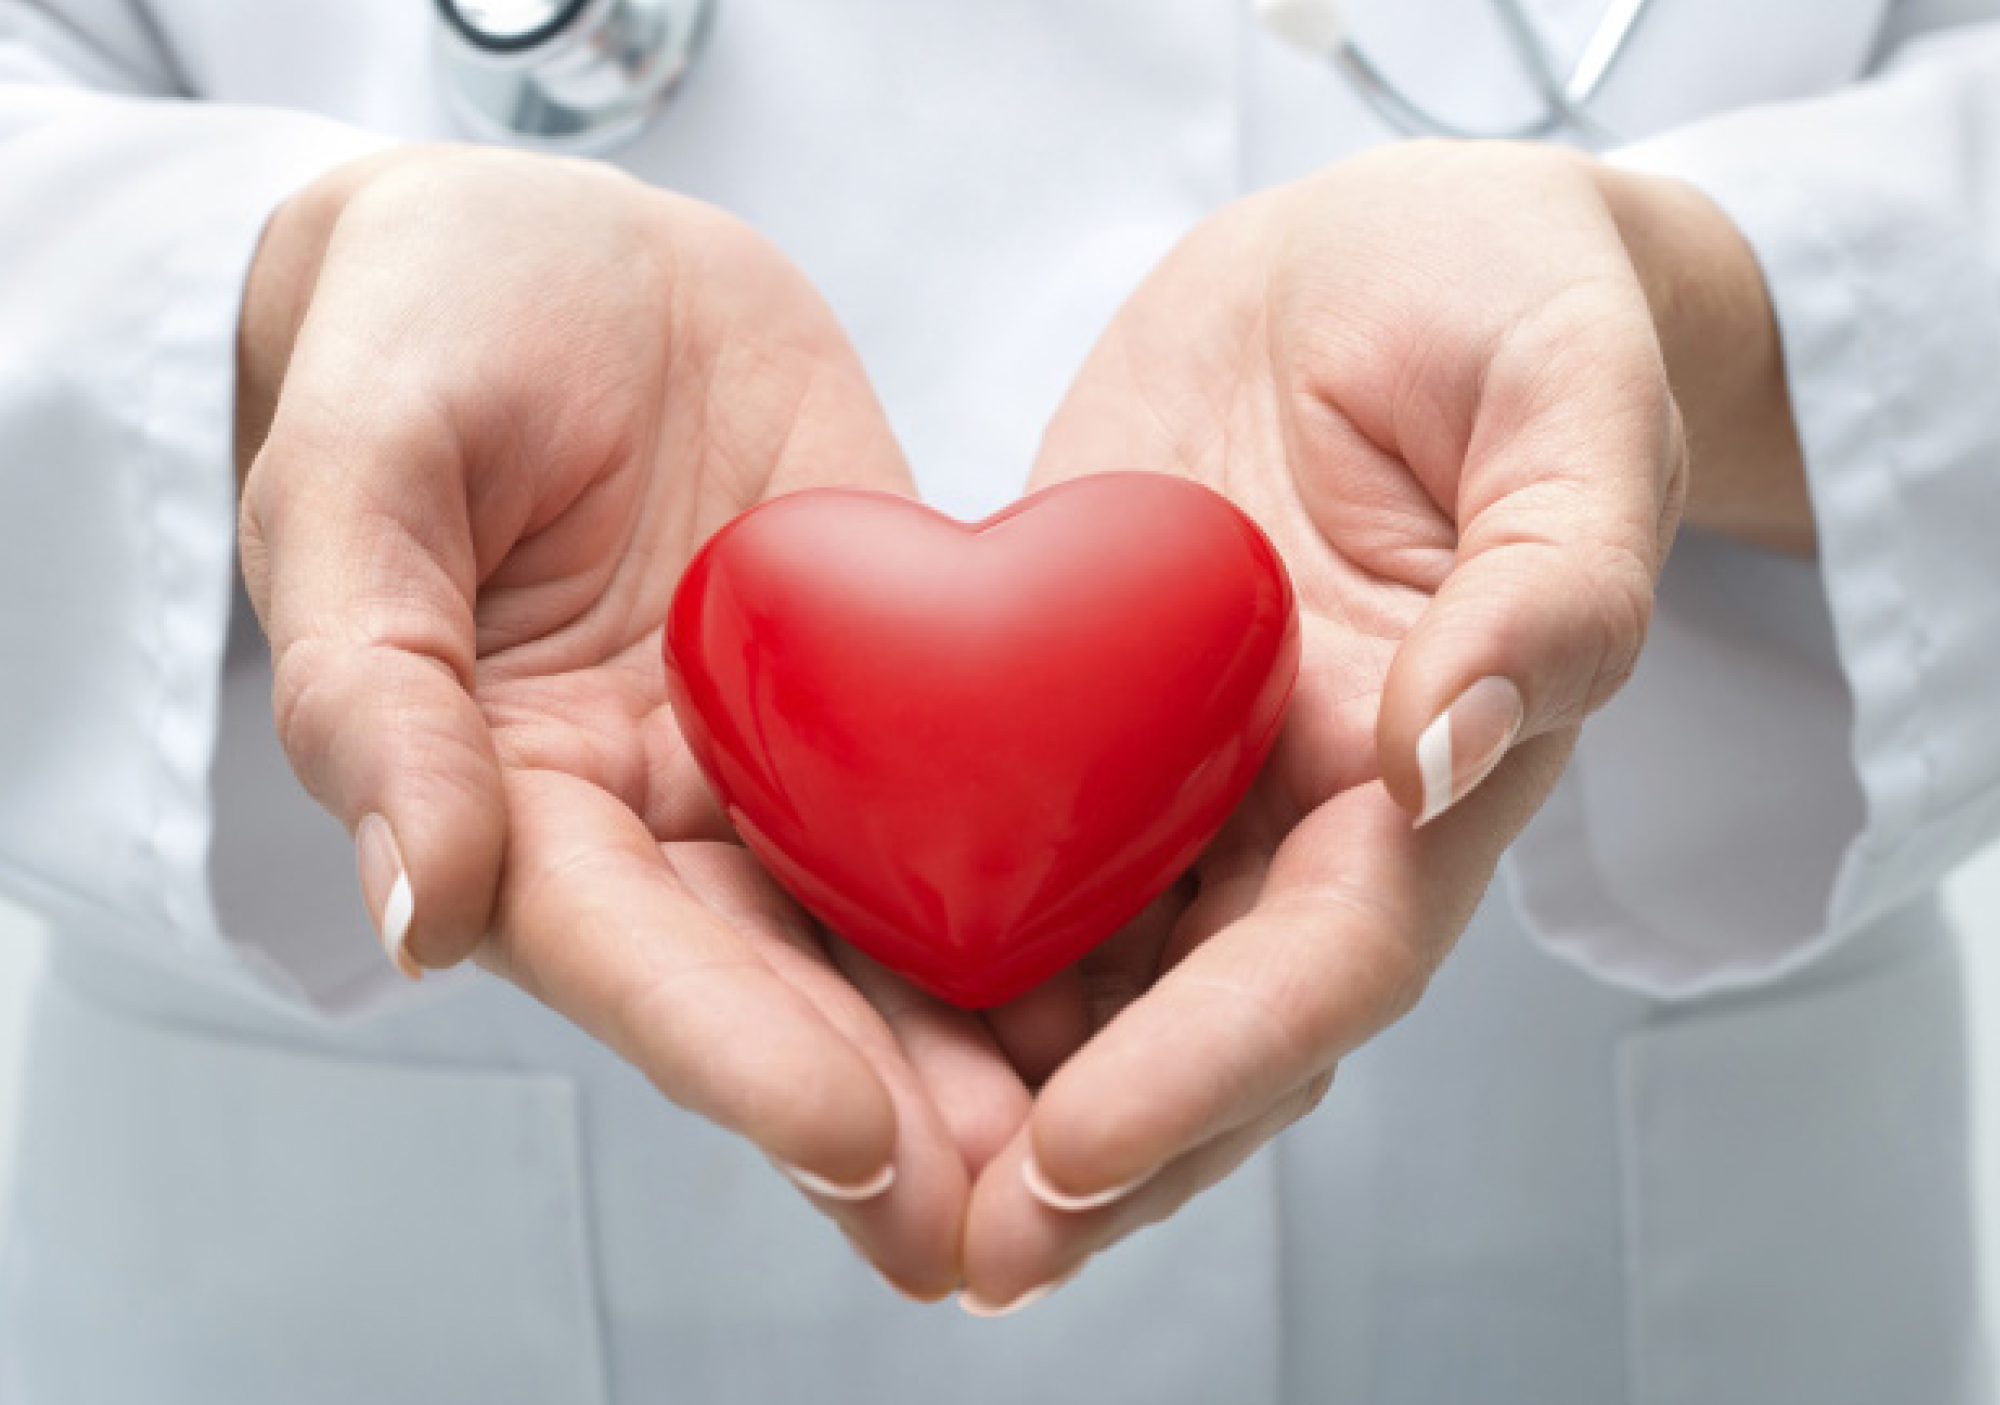 Doctor at tri-cities cancer center holding a heart-shaped object to say thank you to the community